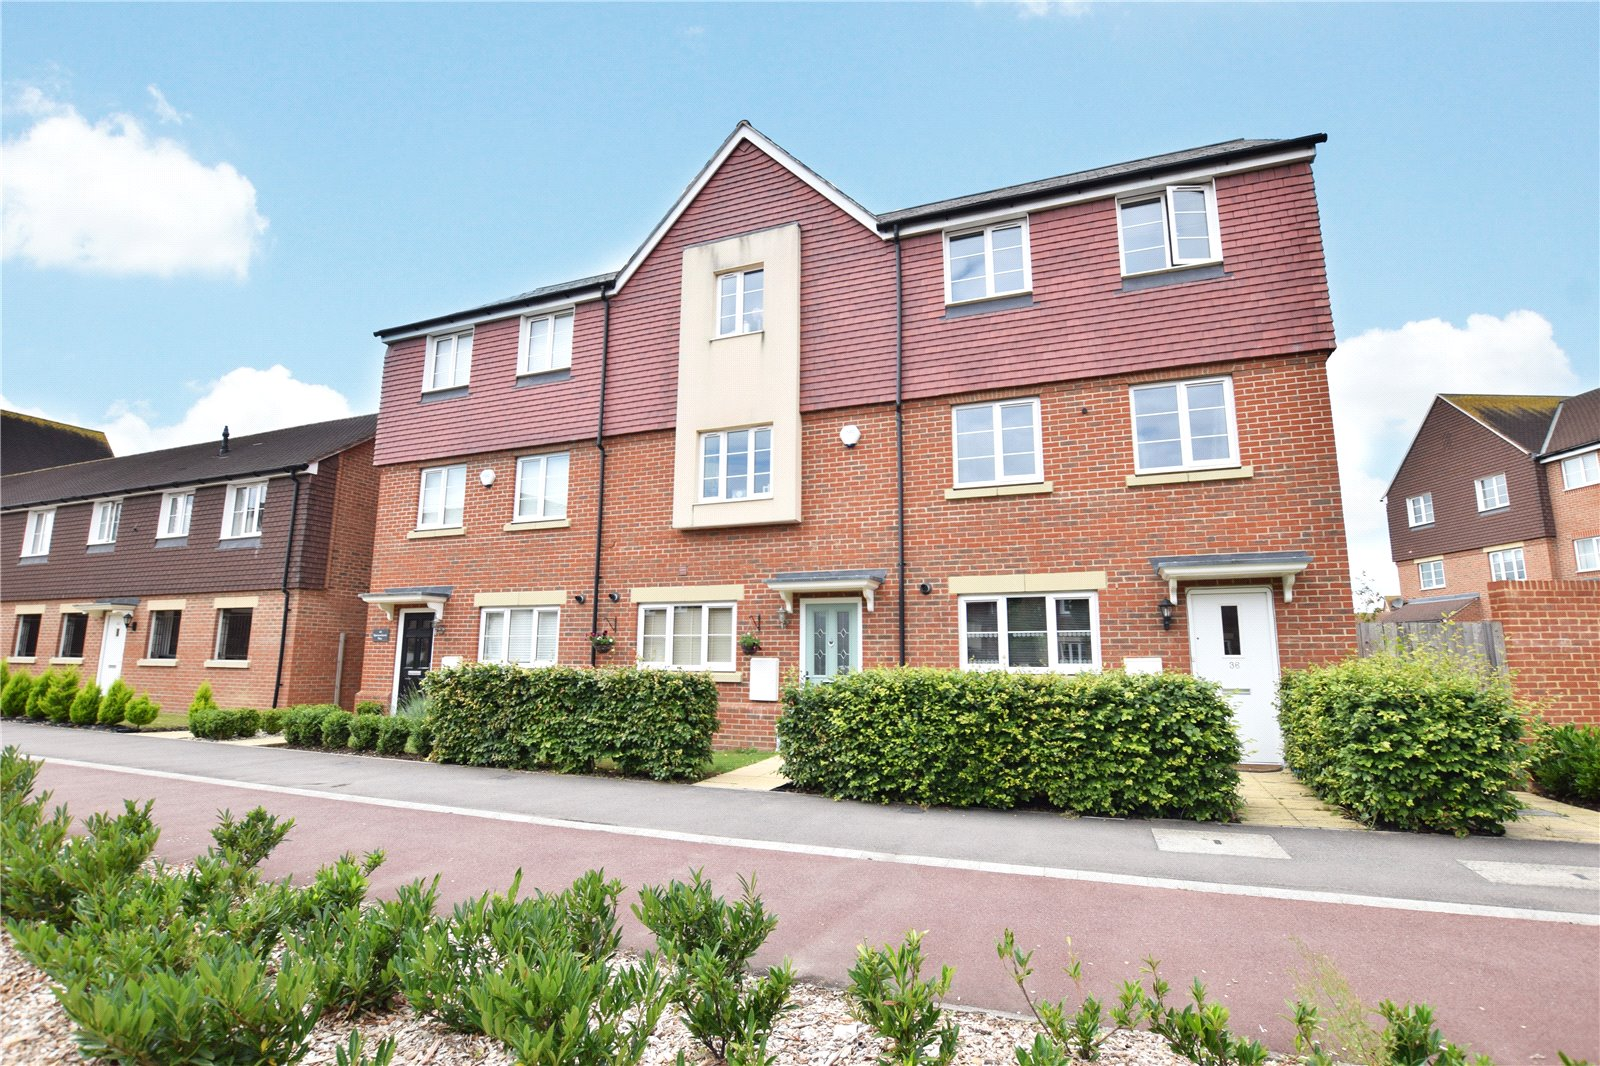 4 Bedrooms Terraced House for sale in Sparrowhawk Way, Jennett's Park, Berkshire, RG12